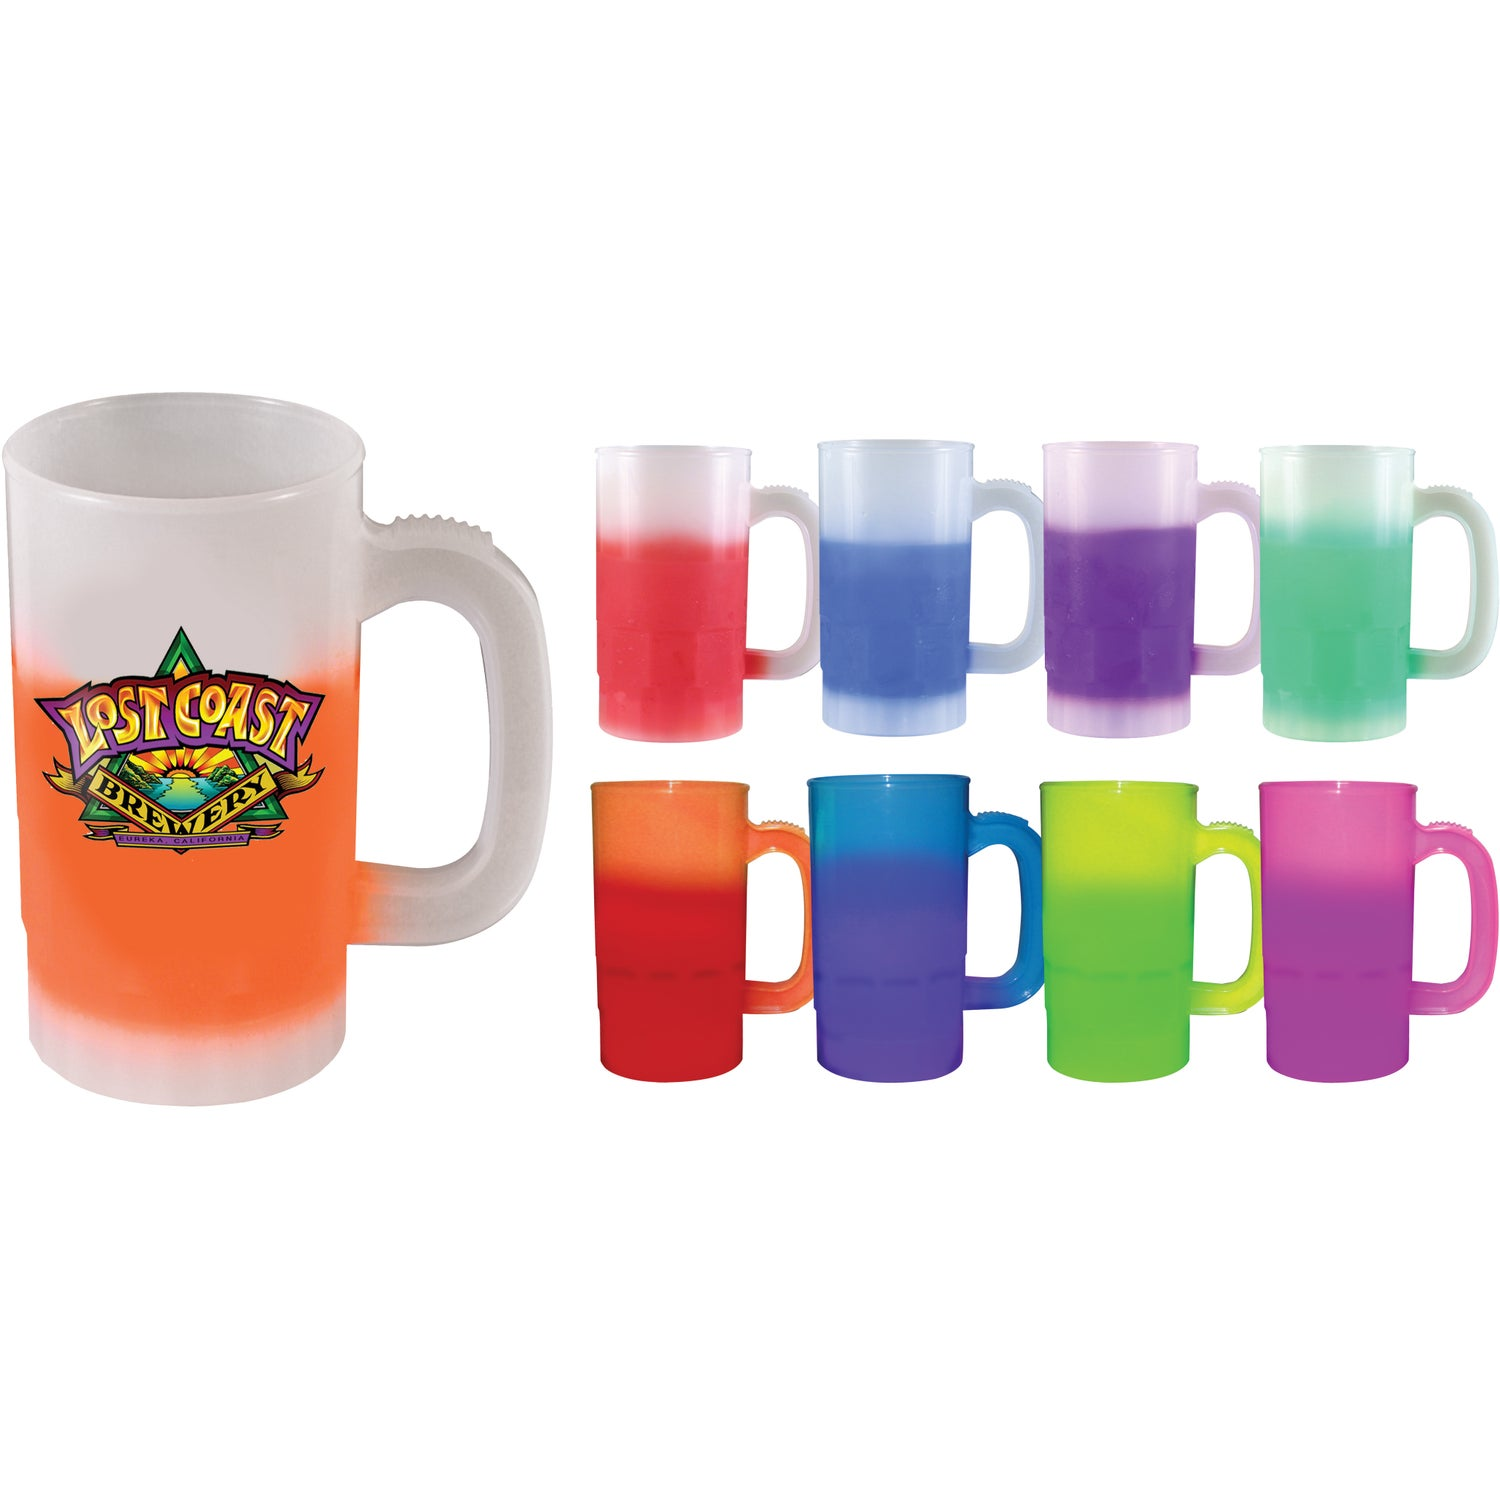 promotional 14 oz one side mood beer steins with custom logo for